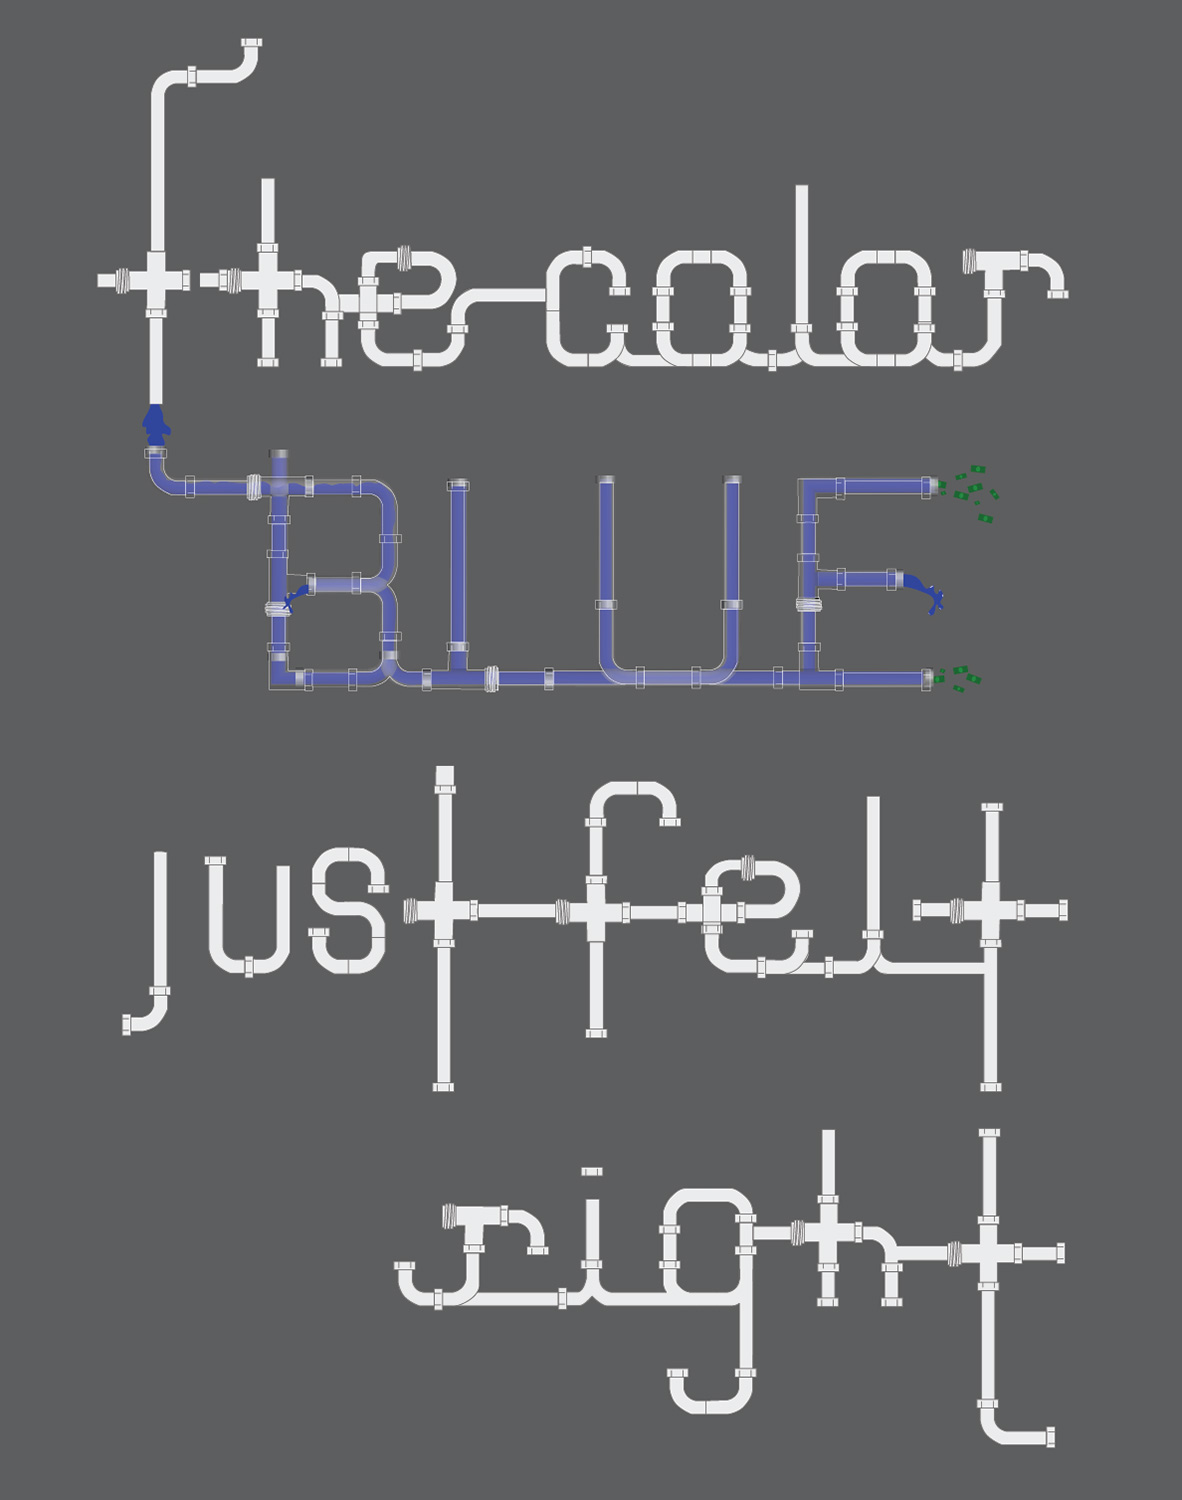 BlueMan_Thecolorblue